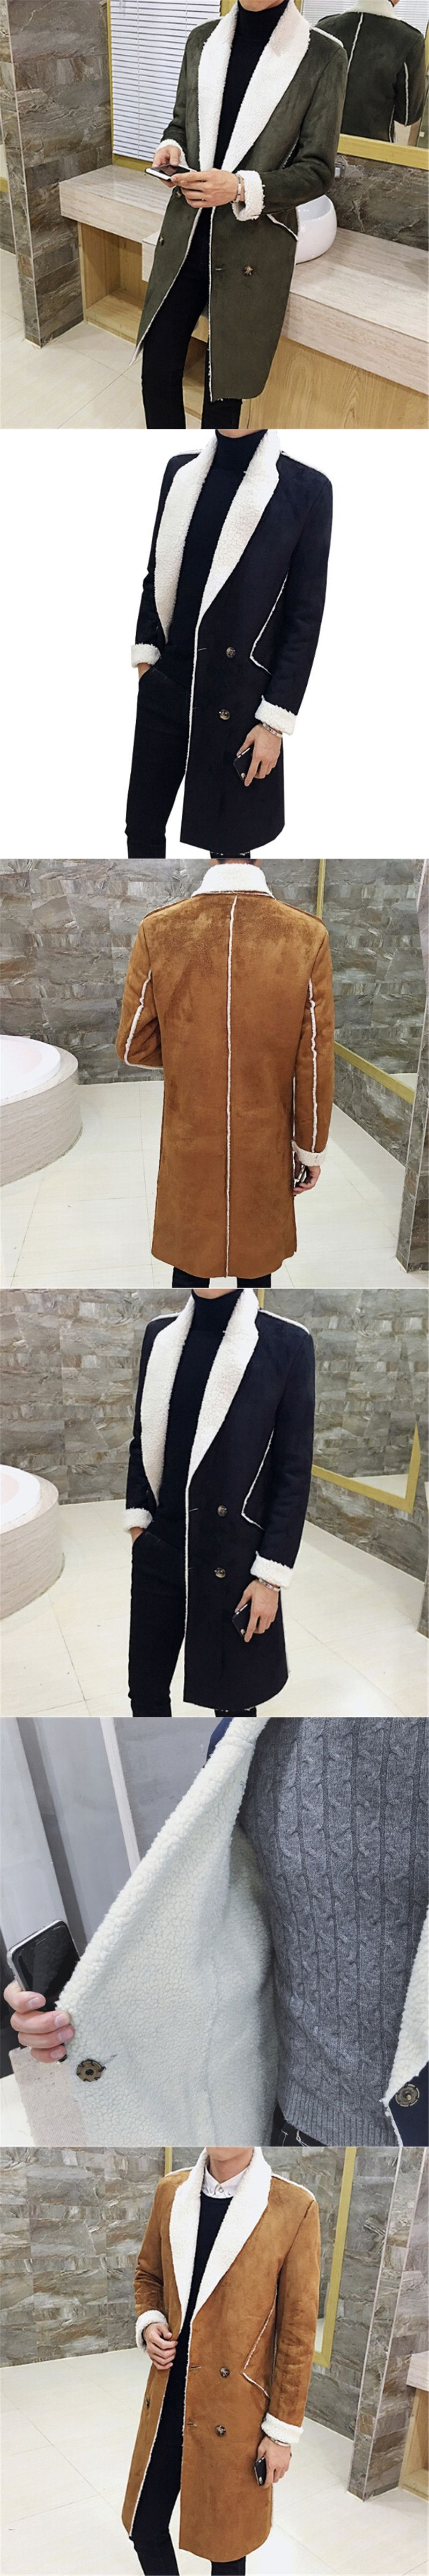 7b24bb9b9fcc 2017 Men Suede Double Breasted Coat Men Fur Collar Slim Fit Brown Green  Male Trench Coat